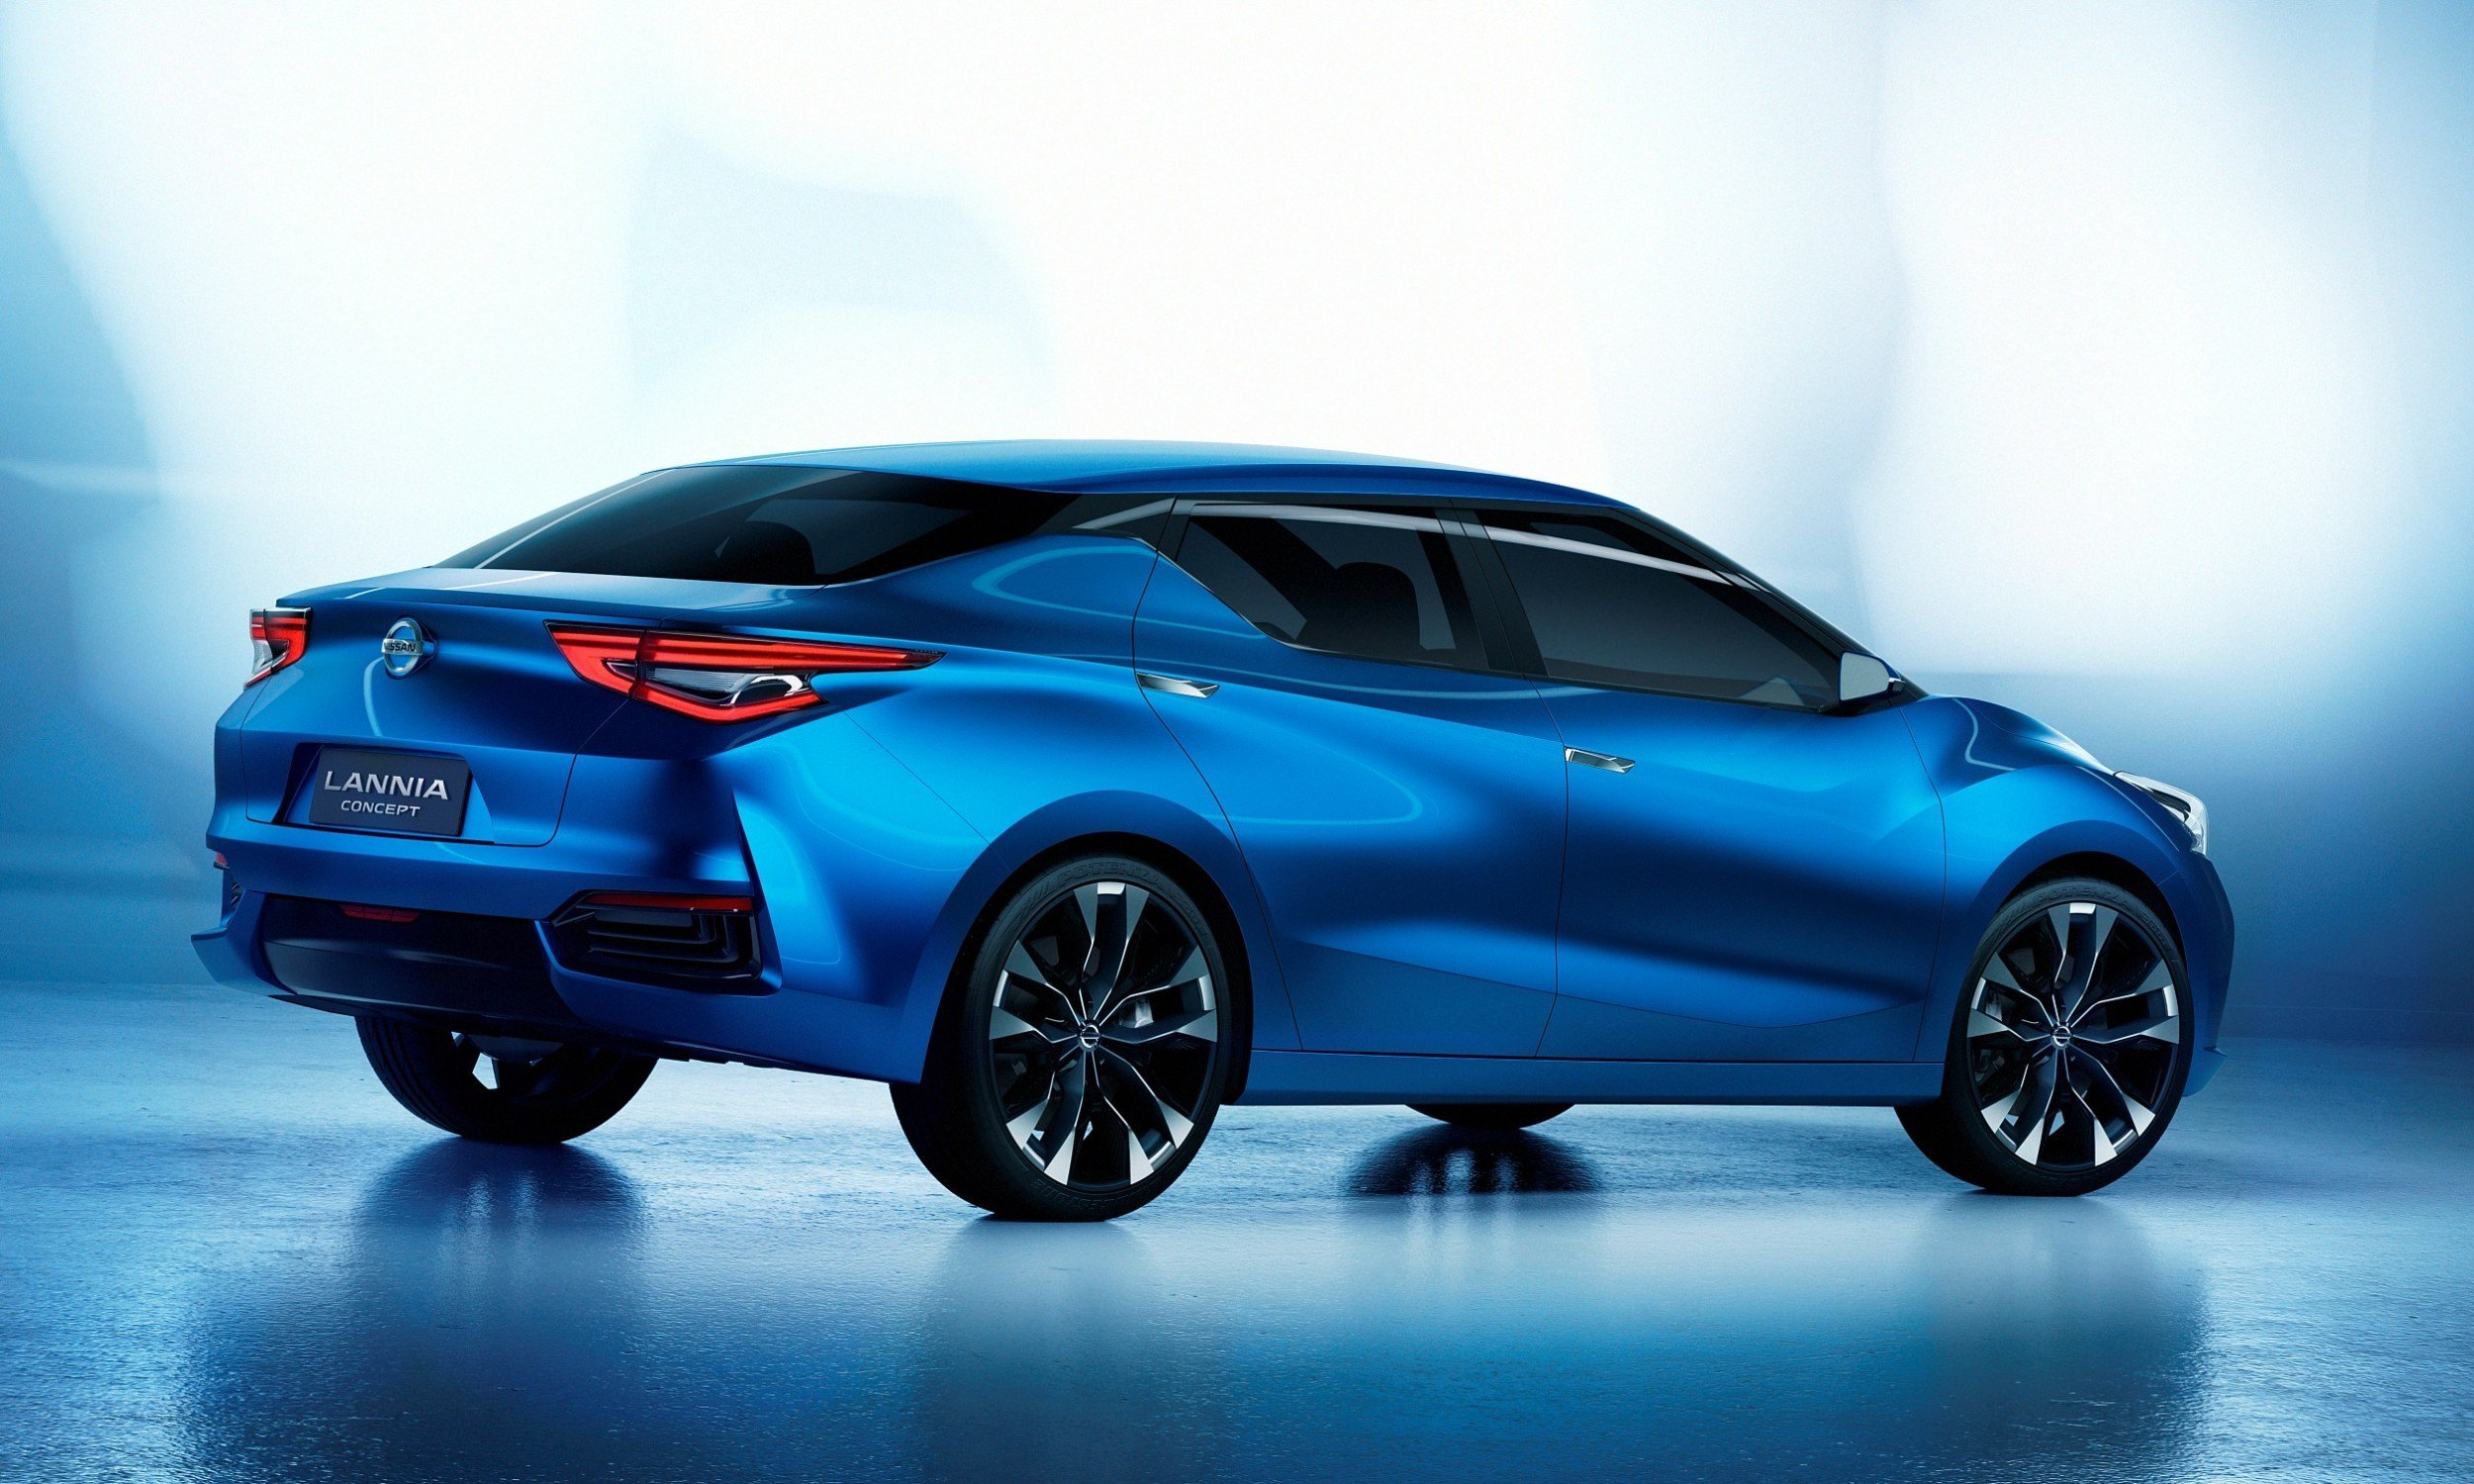 Nice wallpapers 2014 Nissan Lannia Concept 2500x1500px